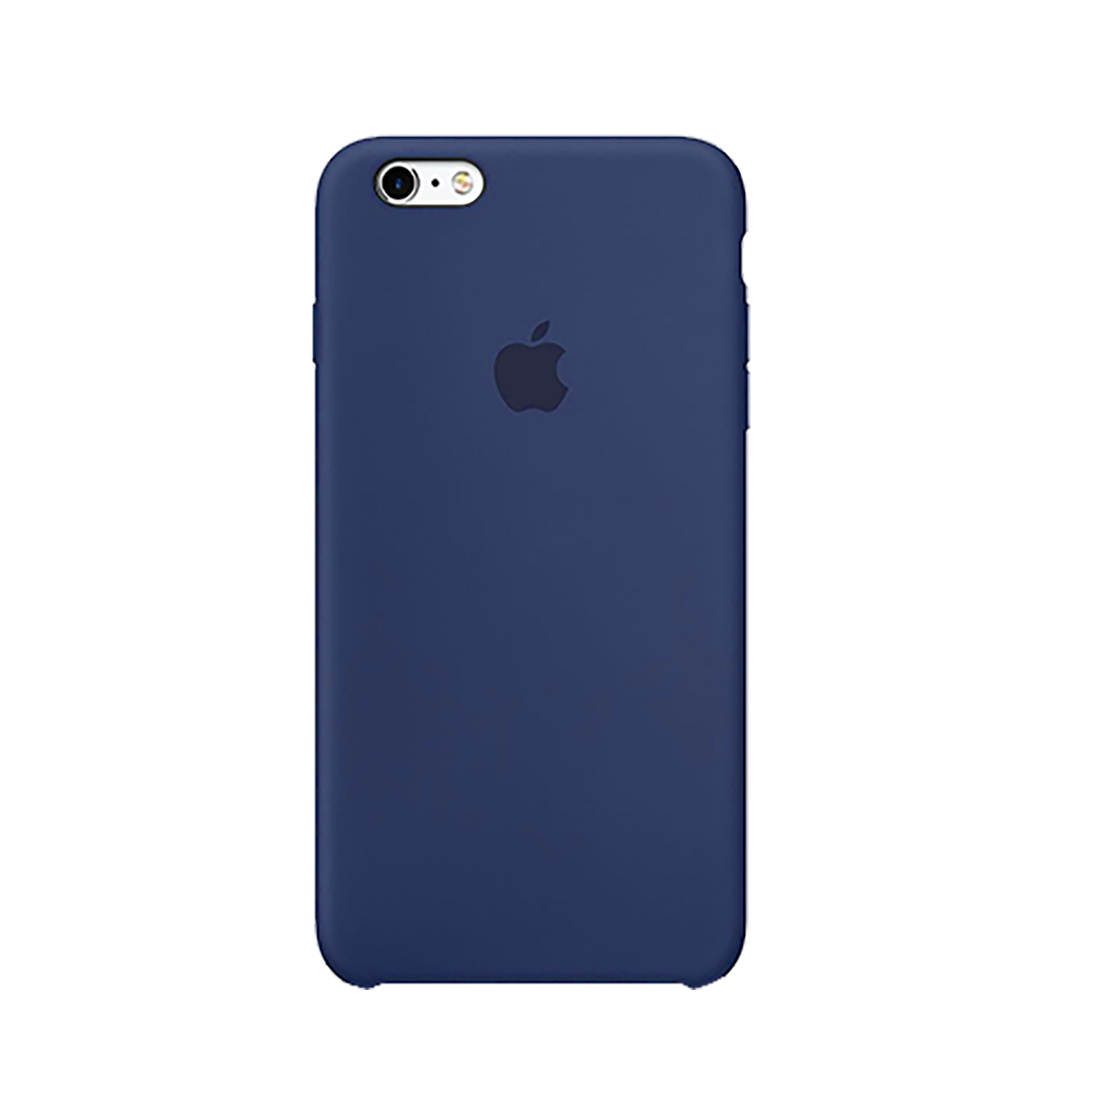 Apple Silicone Case Azul - iPhone 6